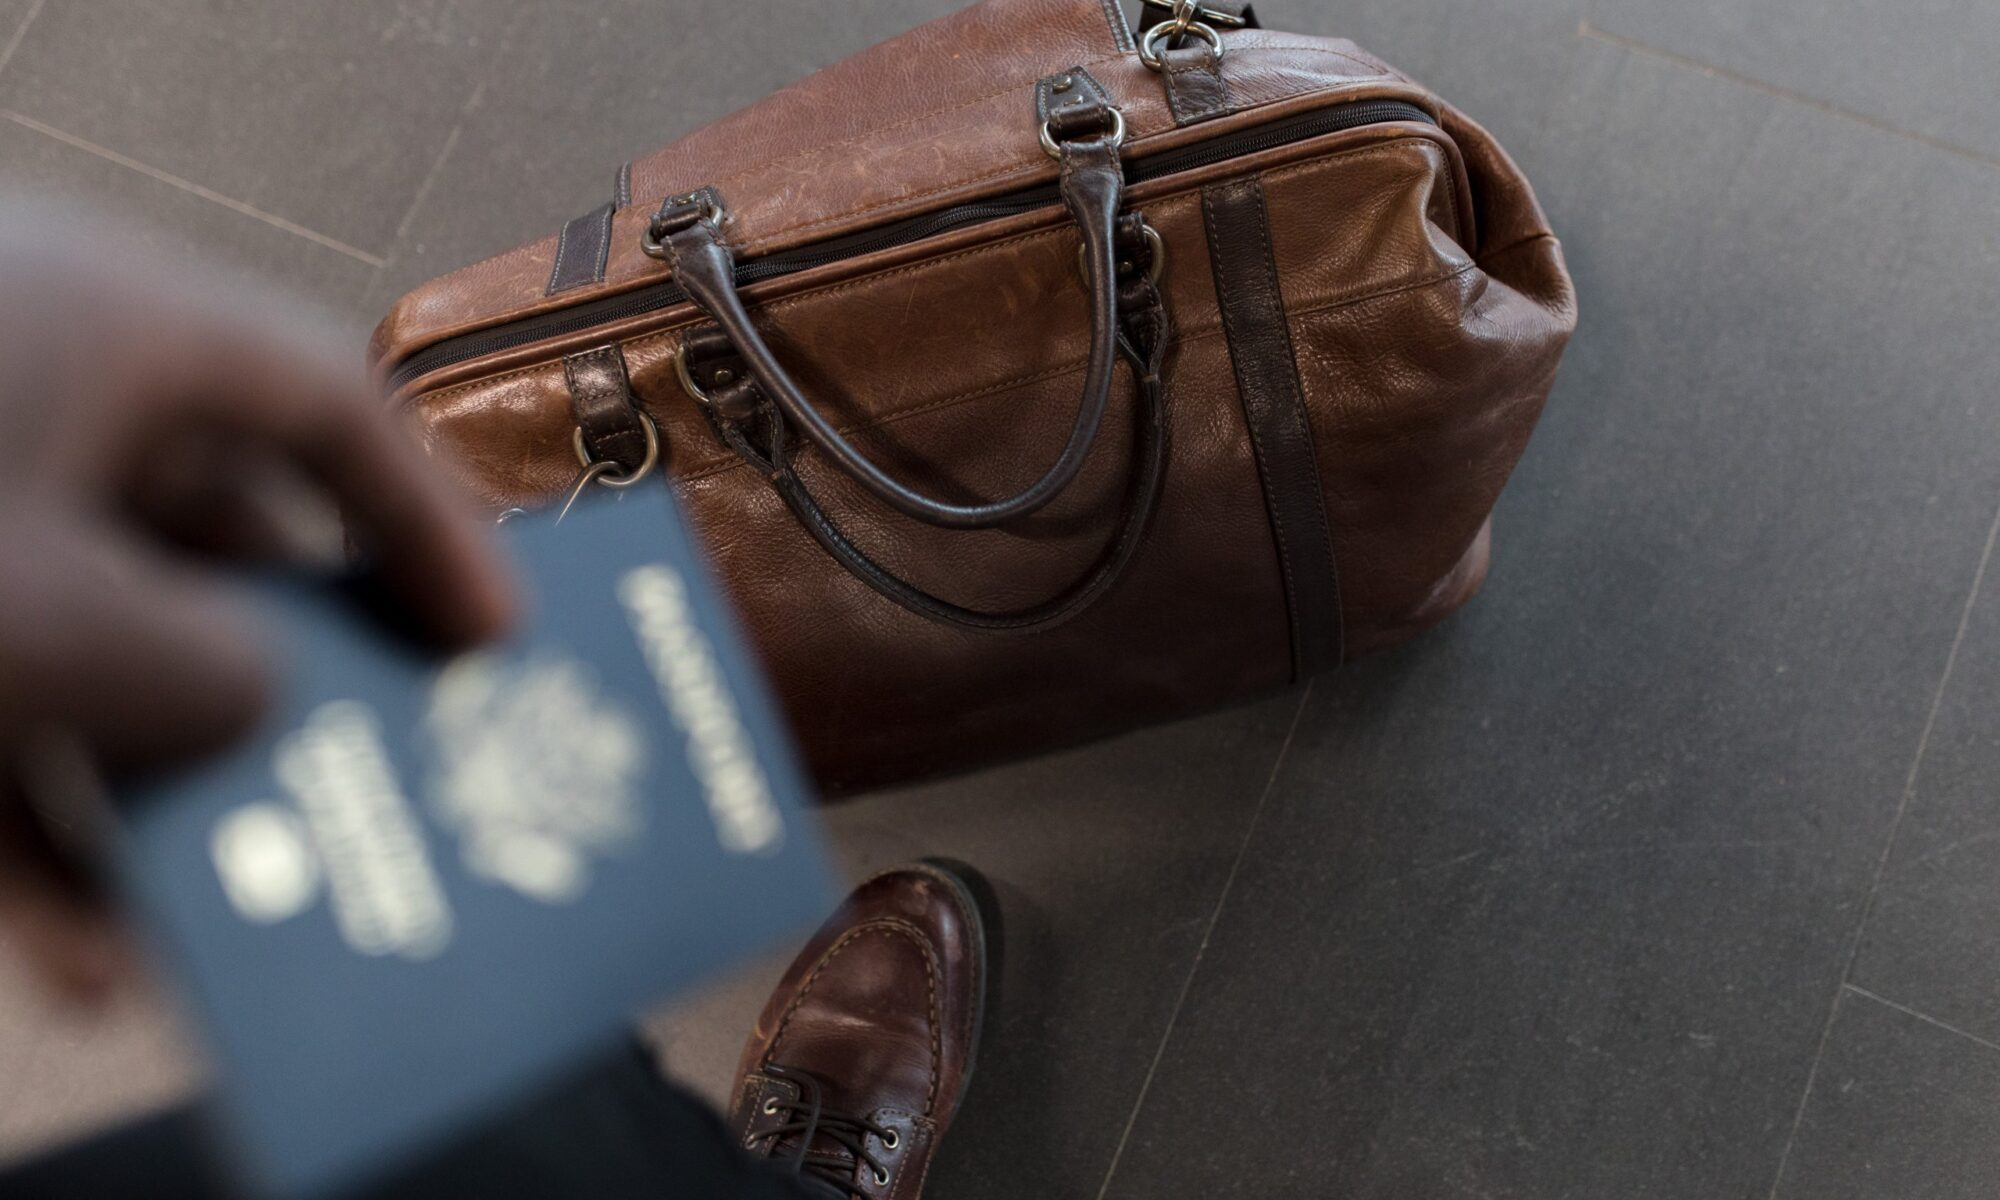 leather bag with passport